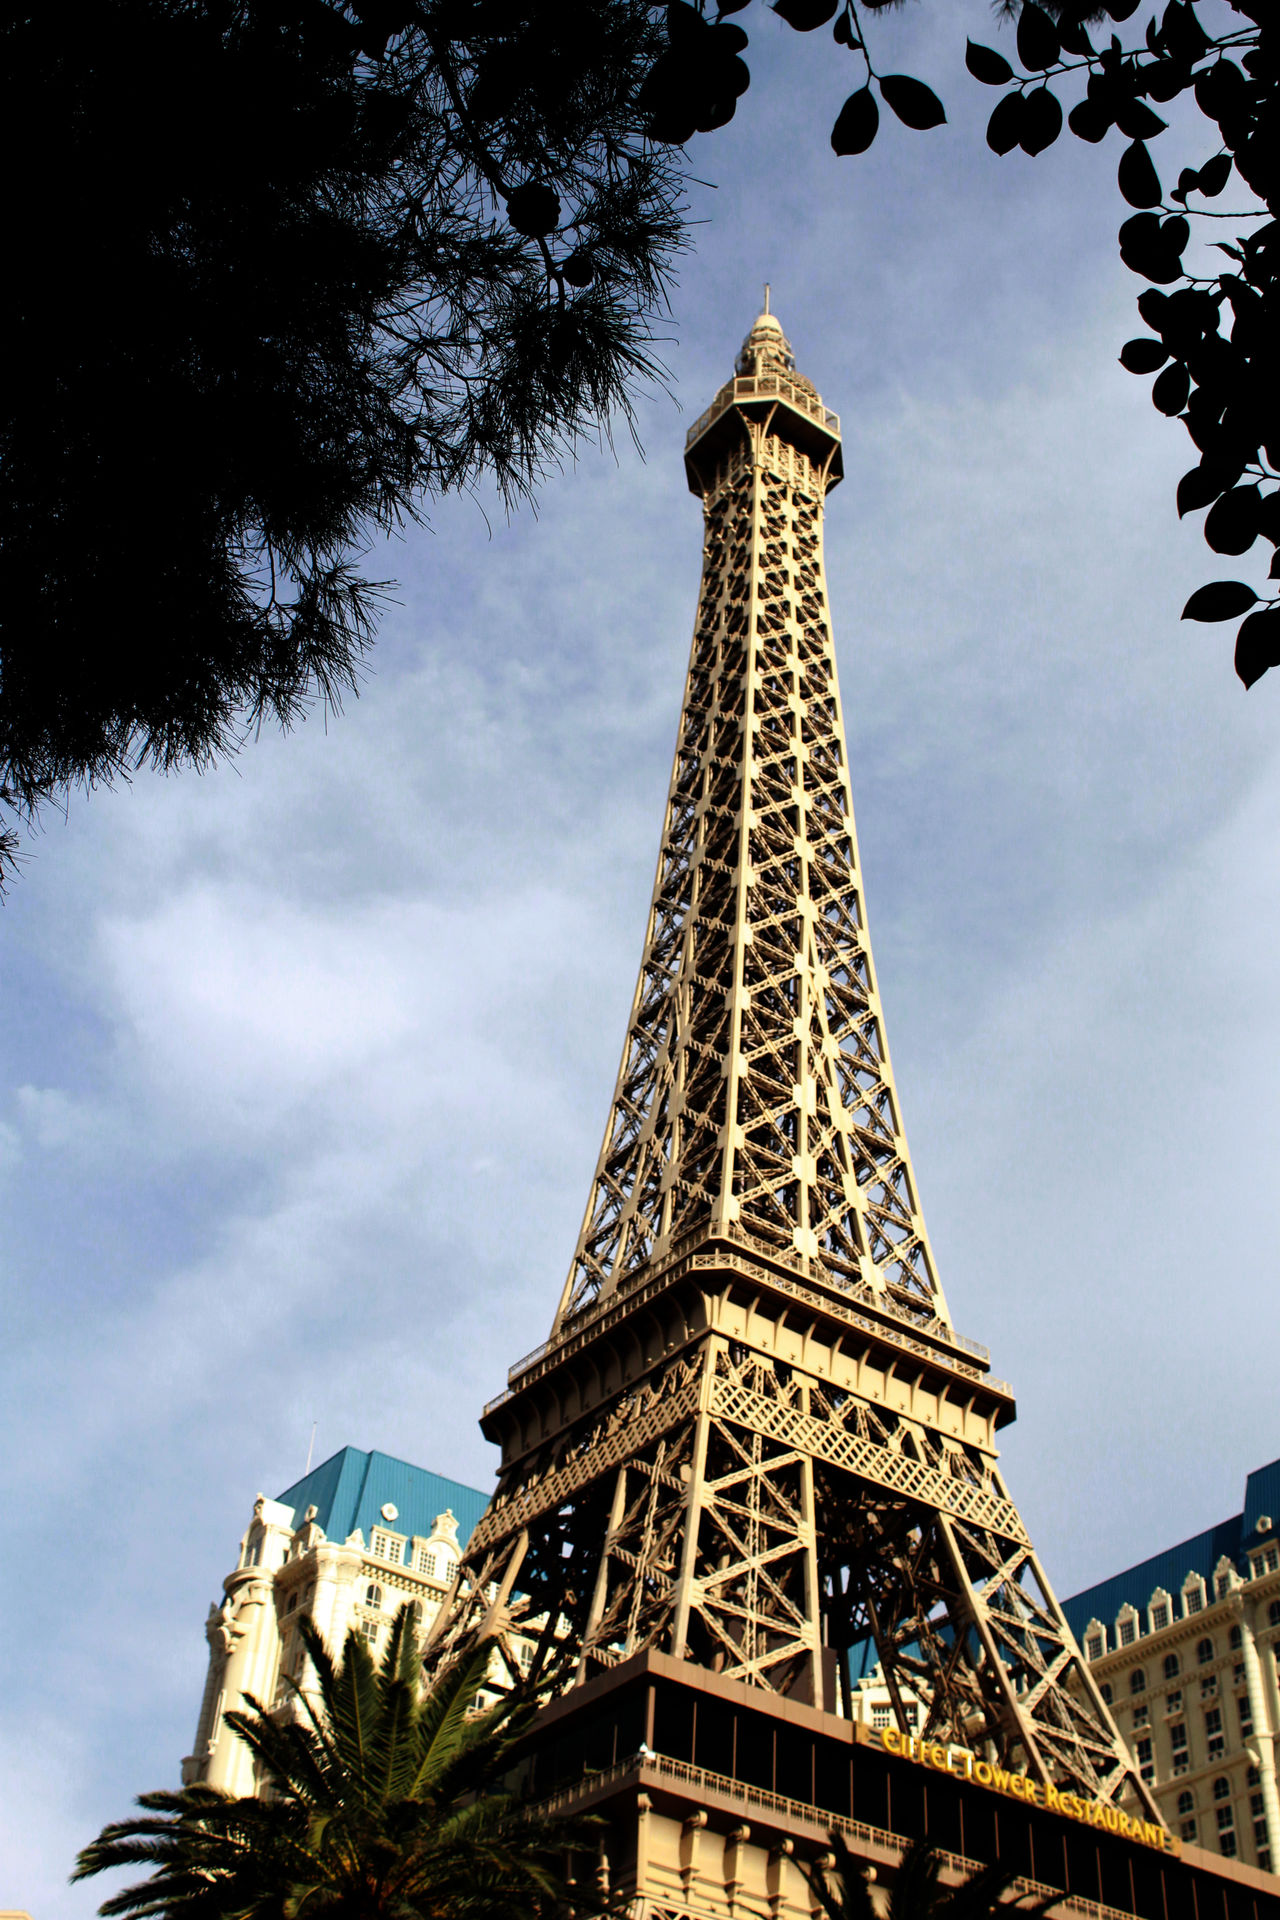 Architectural Feature Eiffel_tower  Famous Place International Landmark Las Vegas Las Vegas ♥ Low Angle View Skyscraper Tourism Tower Travel Destinations Las Vegas Nevada Las Vegas Blvd Lasvegas Las Vegas NV Las Vegas Documentary Photography Las Vegas Impressions Lasvegasnevada Lasvegas Boulevard Lasvegasblvd Tourist Attraction  Travel Photography París Hotel-Las Vegas, Nevada Paris Hotel And Casino Paris Hotel